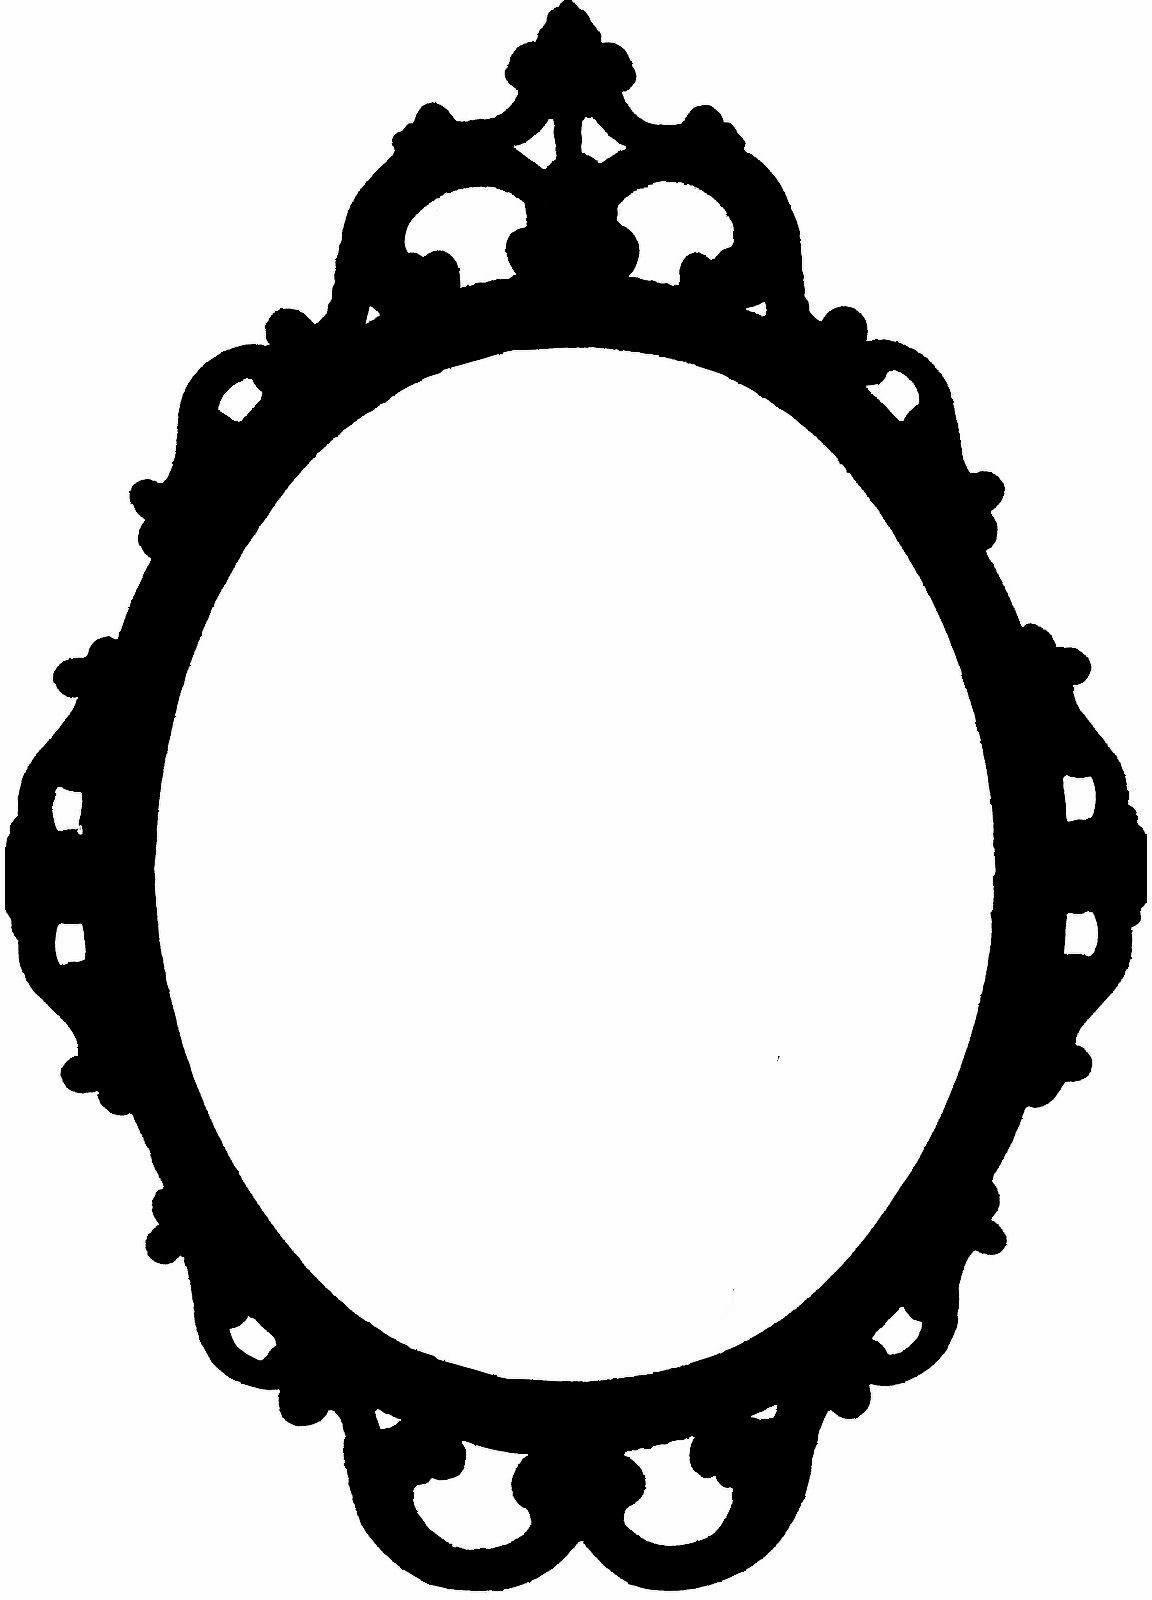 Another beautiful frame - Free .SVG Download